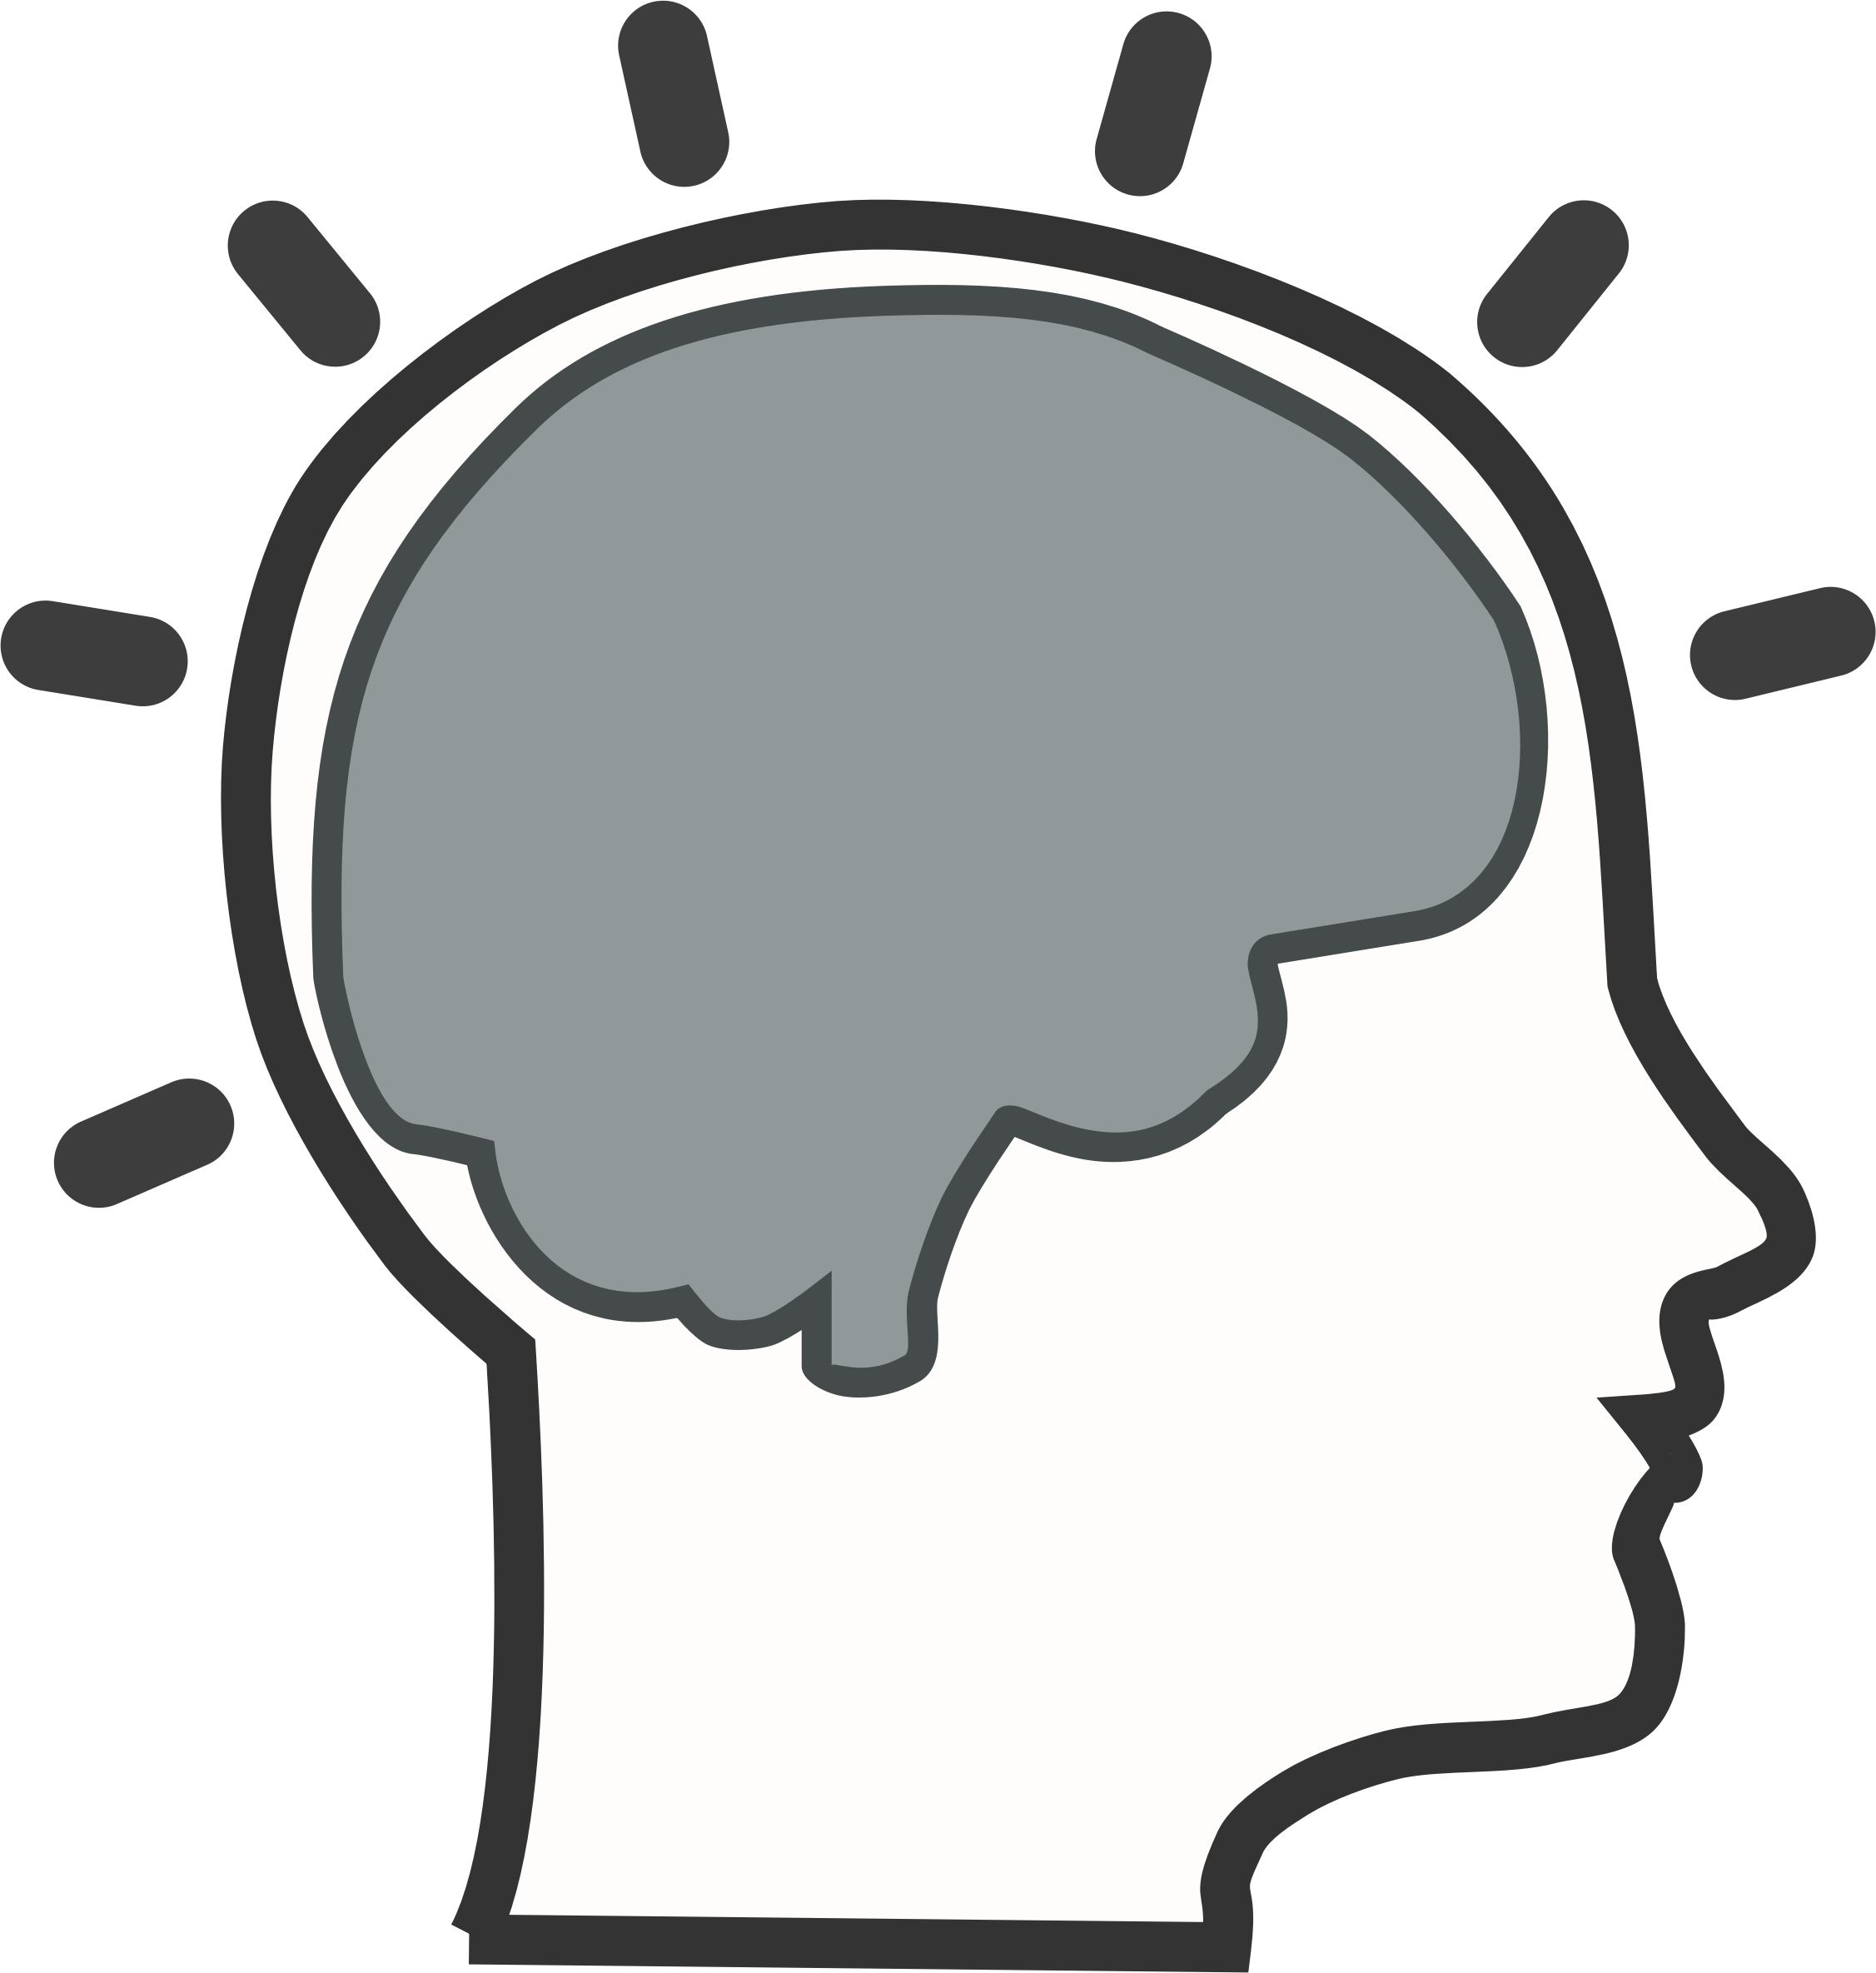 Brain Clipart. Psychology .-Brain Clipart. Psychology .-0